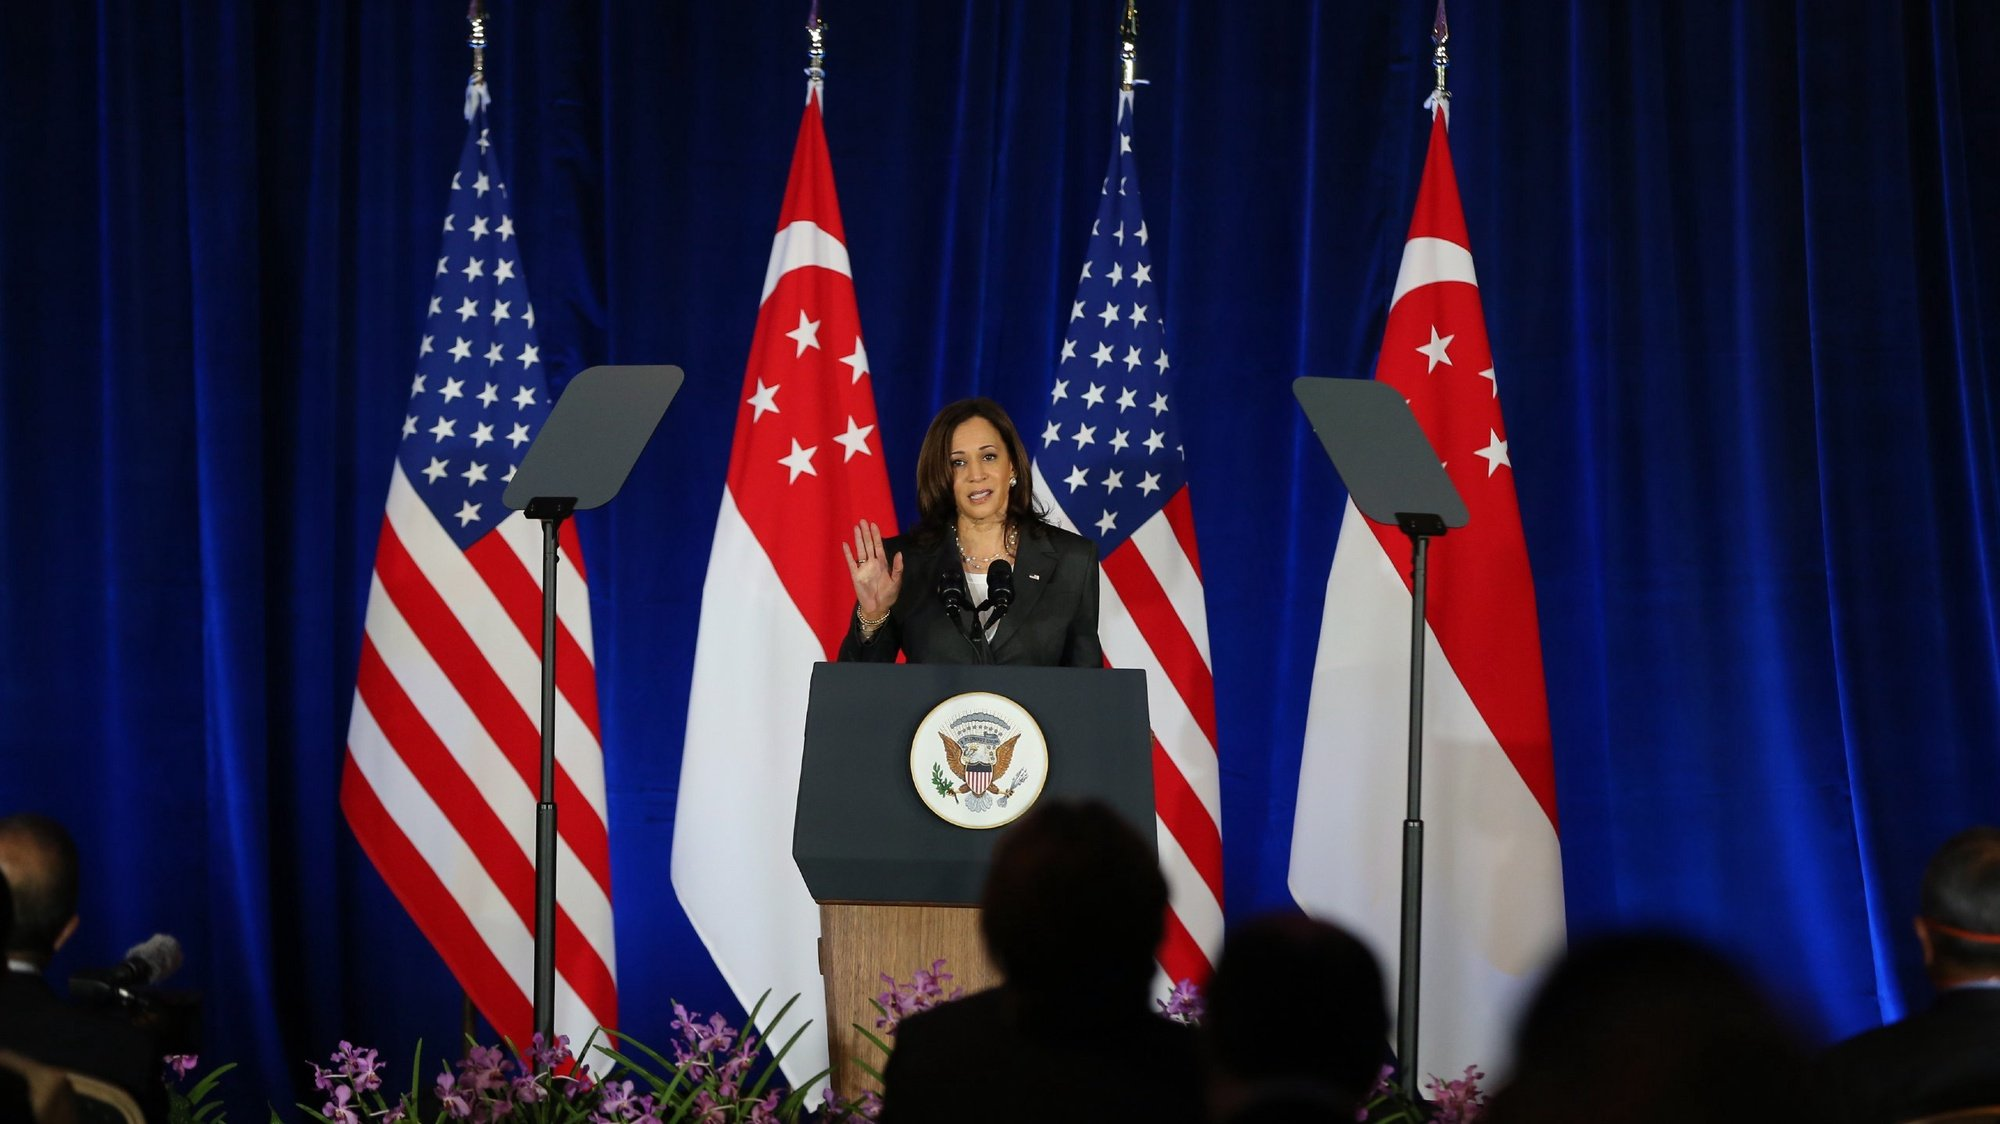 epa09427015 US Vice President Kamala Harris delivers a speech at Gardens by the Bay in Singapore, 24 August 2021. US Vice President Kamala Harris is on an official three-day visit to Singapore before heading to Vietnam on 24 August 2021.  EPA/ONG WEE JIN / SPH SINGAPORE OUT